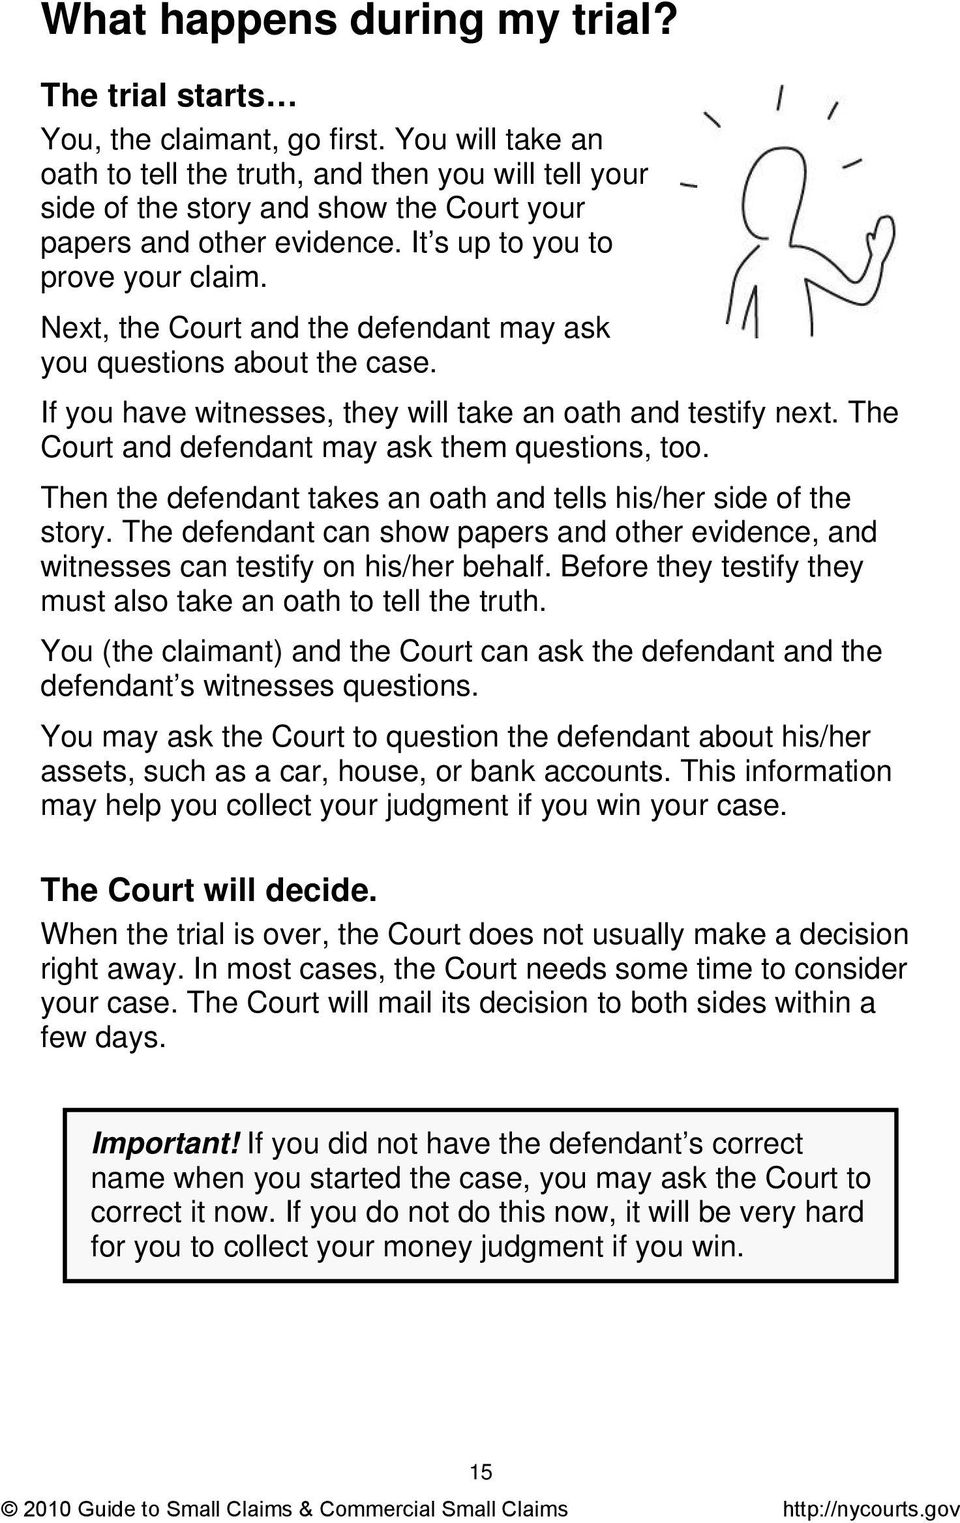 Next, the Court and the defendant may ask you questions about the case. If you have witnesses, they will take an oath and testify next. The Court and defendant may ask them questions, too.